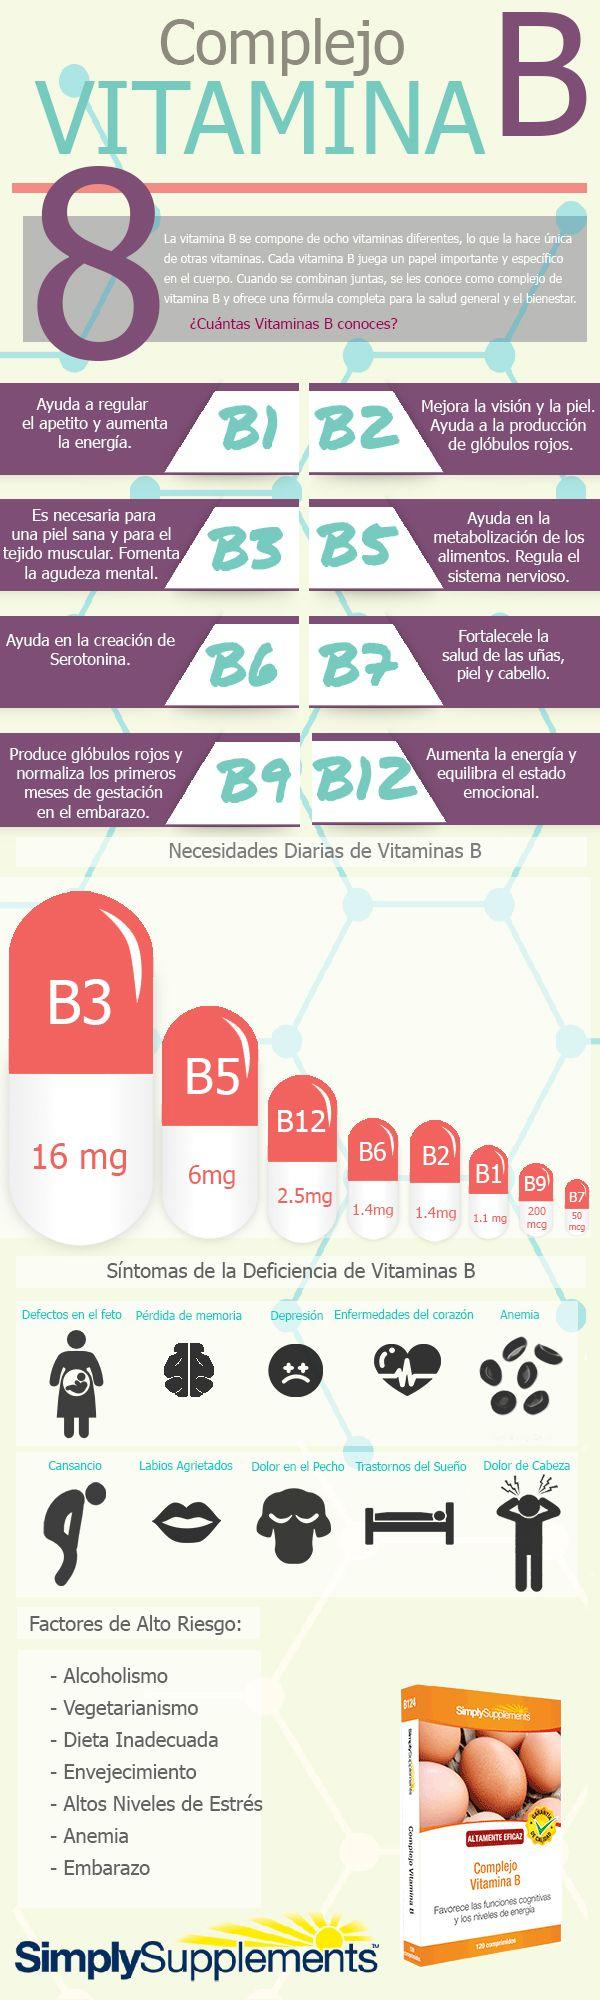 infografia beneficios vitamina b